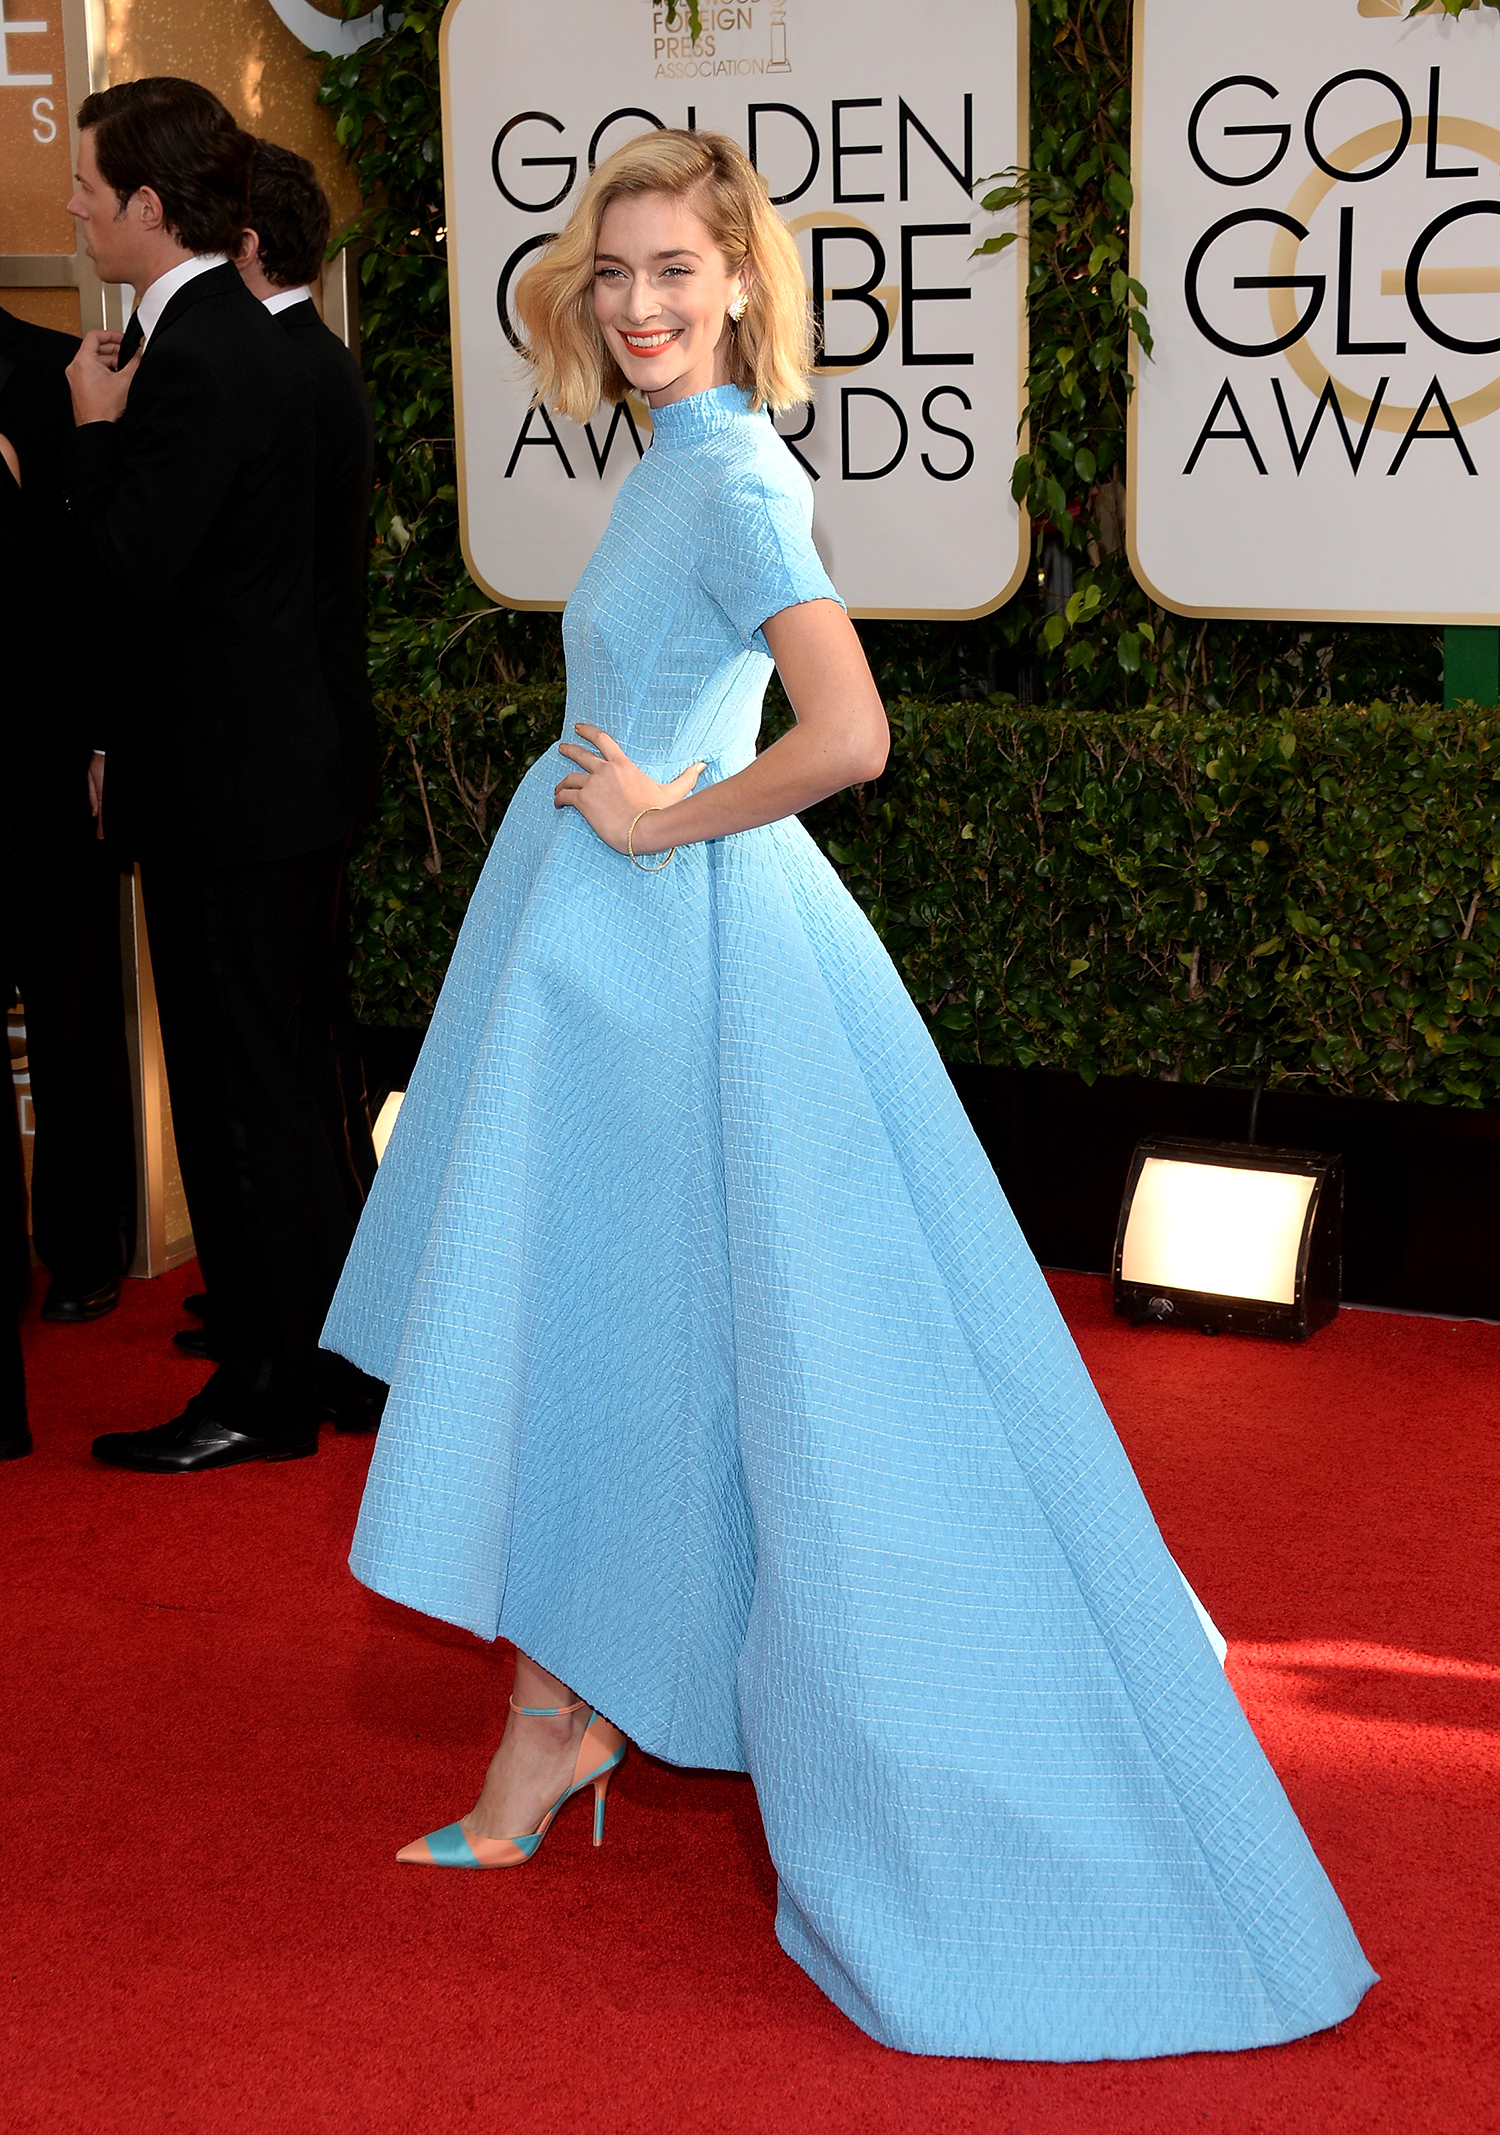 Red carpet style at the 2014 Golden Globes